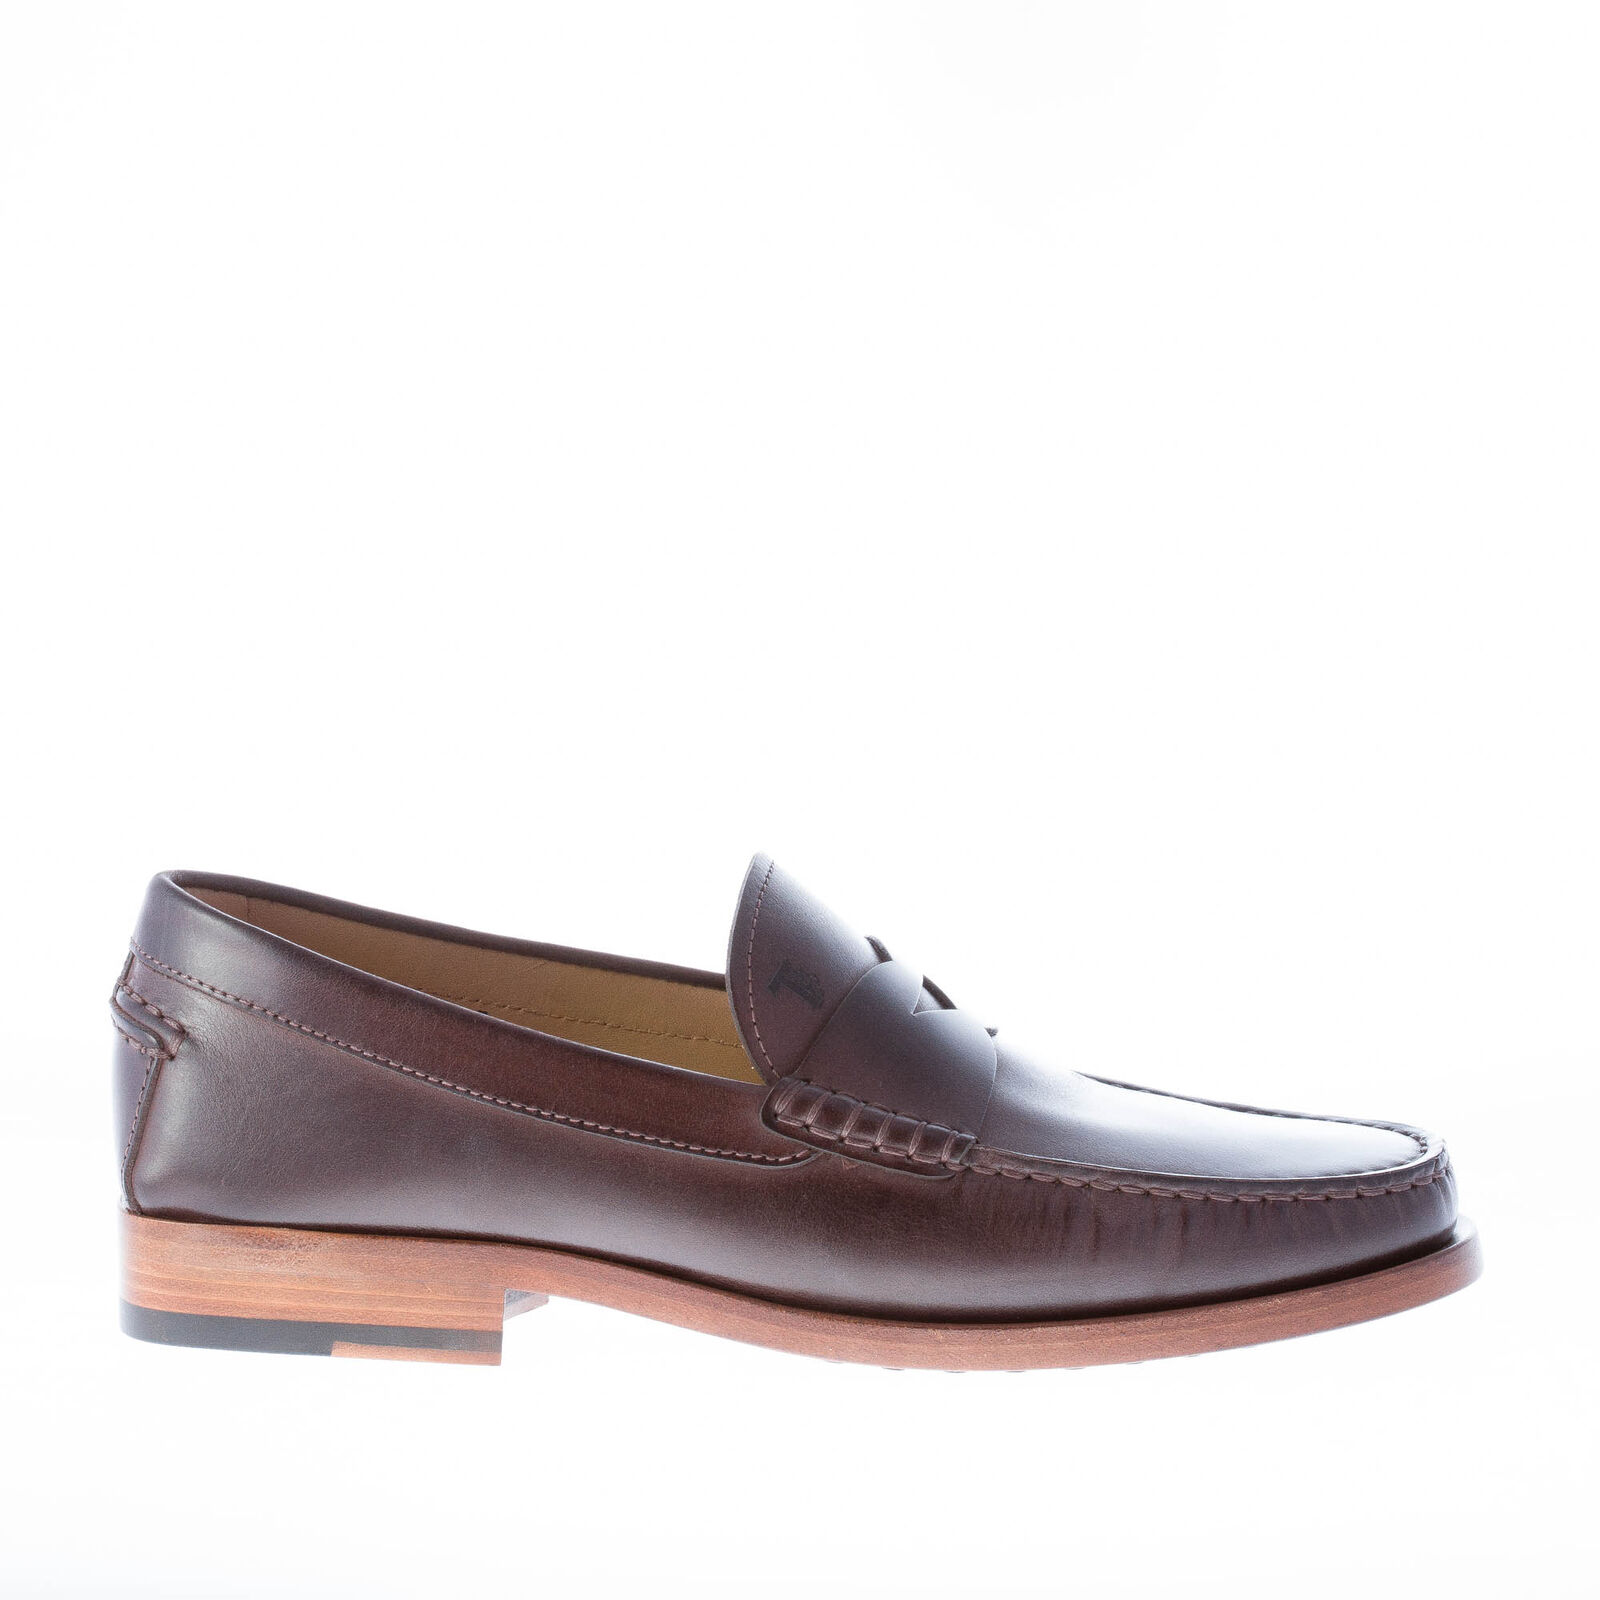 TOD'S herren schuhe men shoes Ebony brown calf leather penny bar loafer